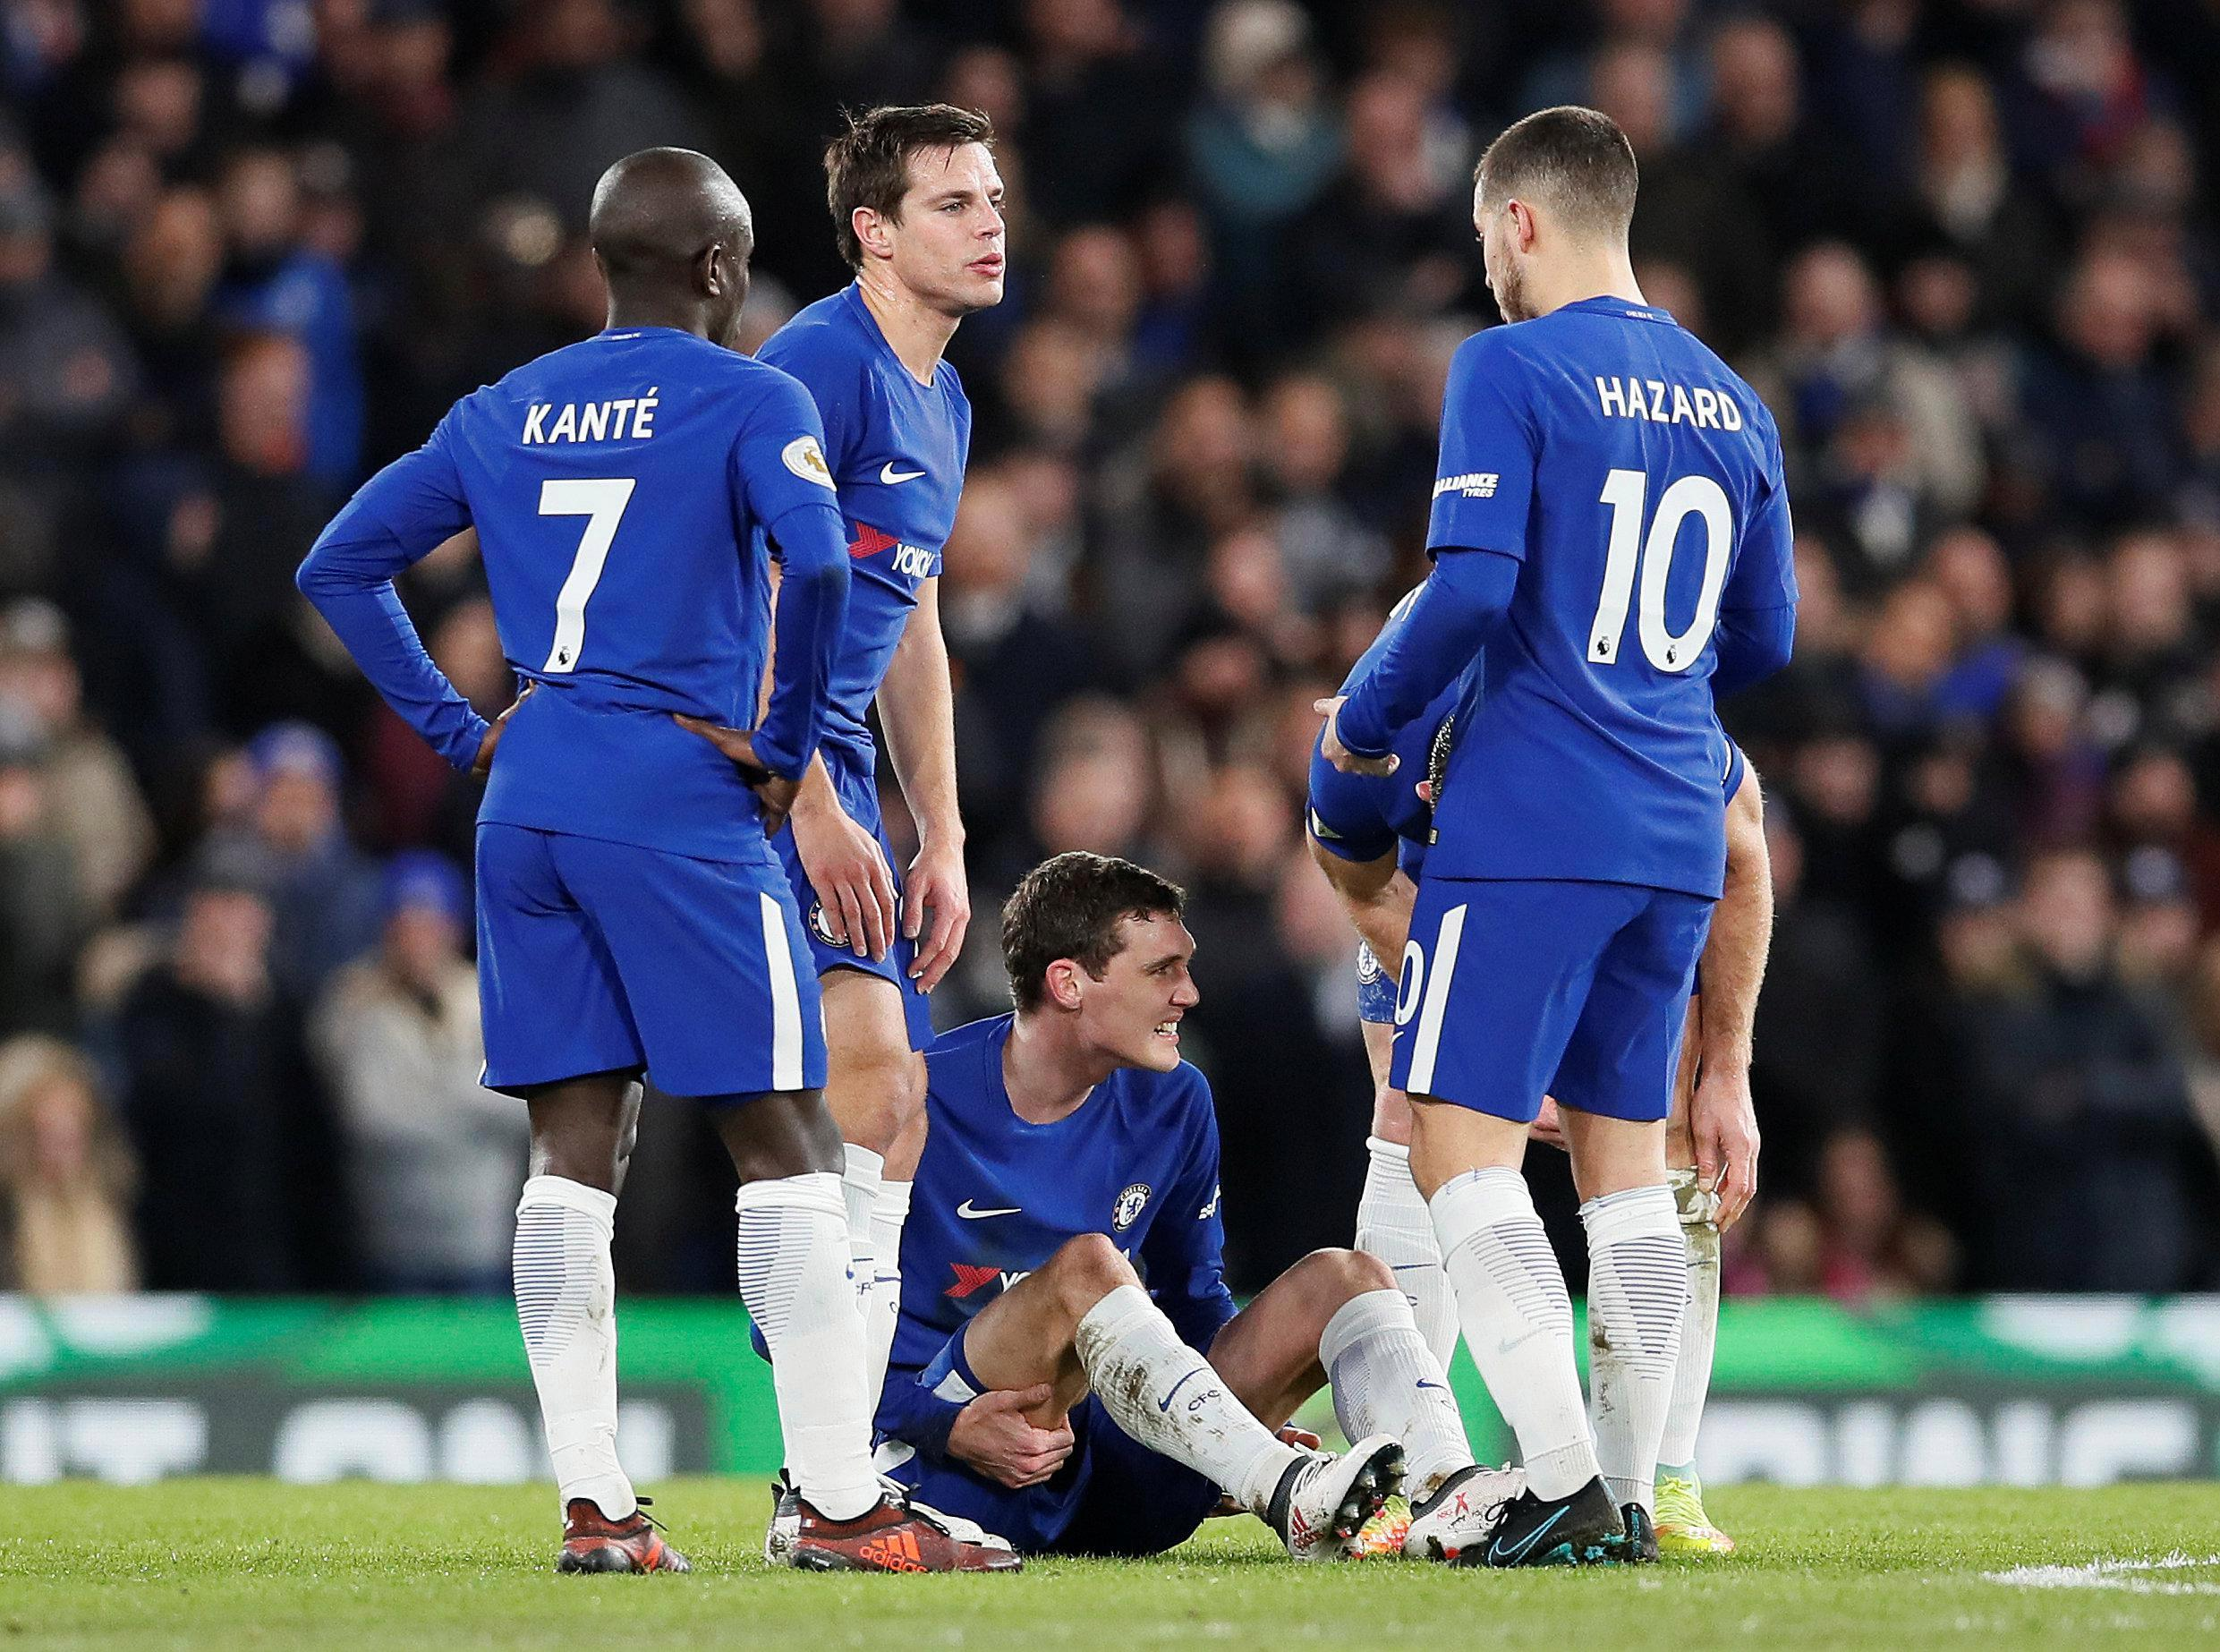 Chelsea blow as Andreas Christensen hobbles off with suspected hamstring tear